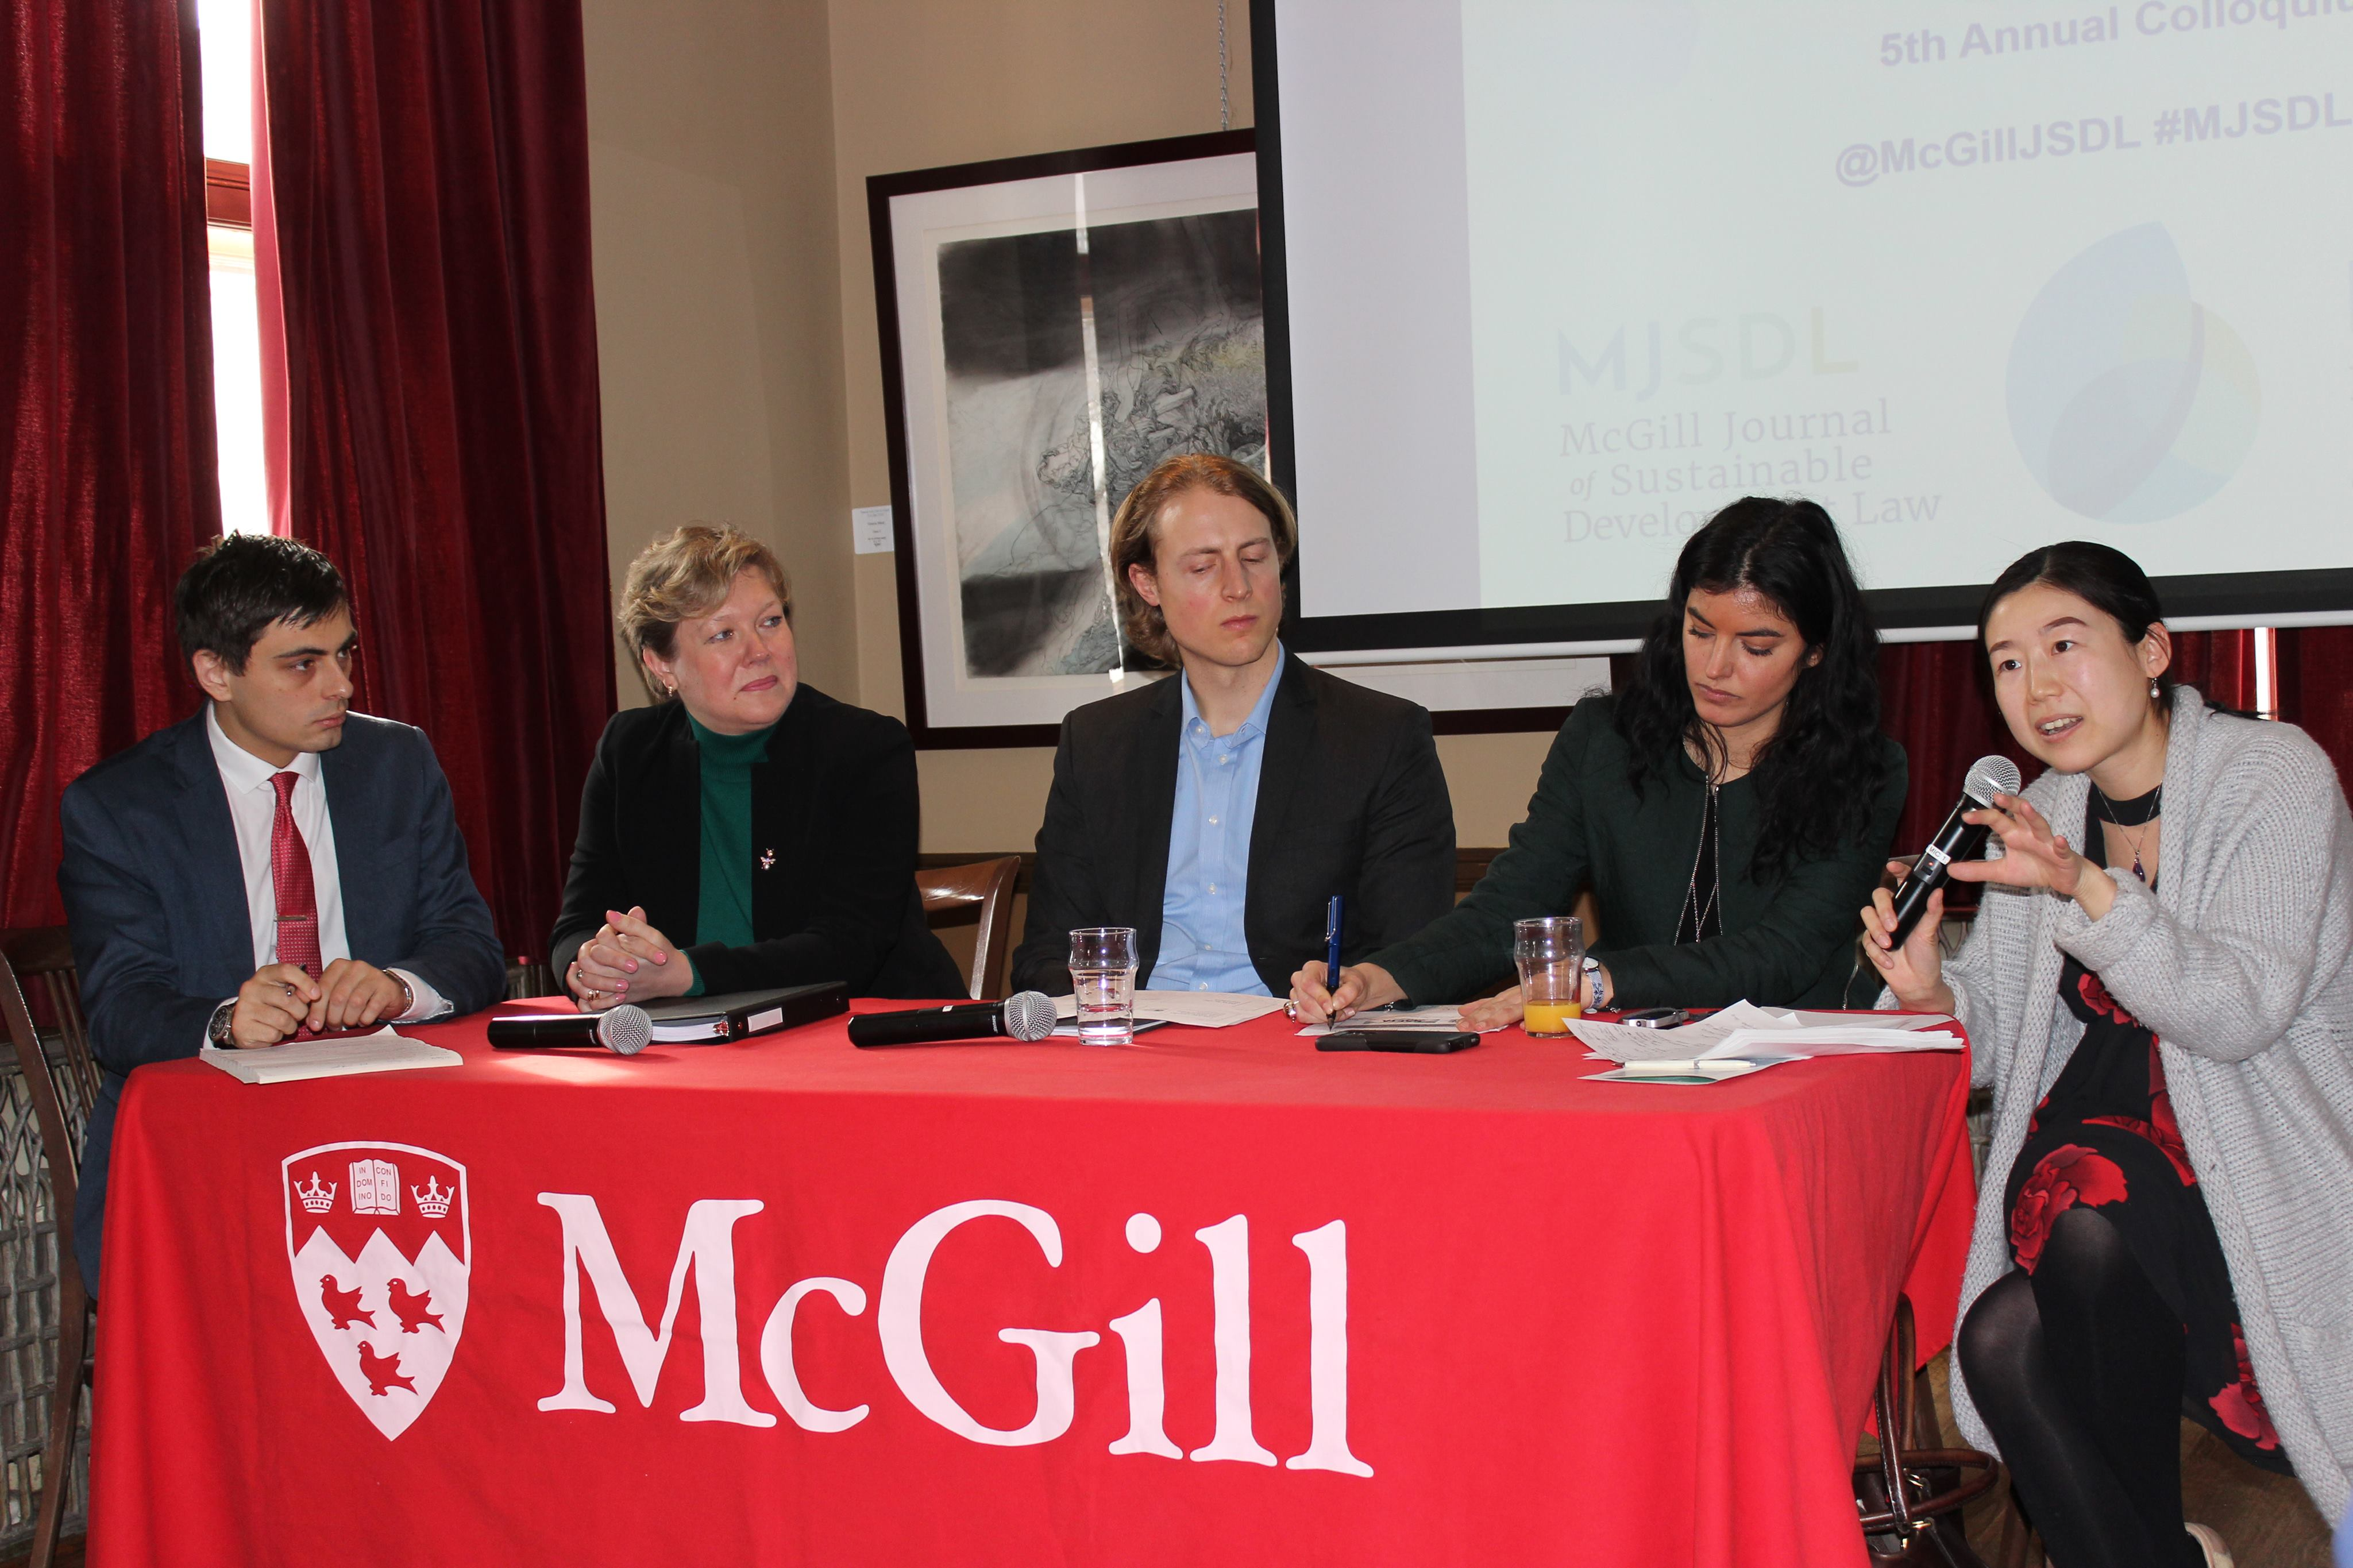 The Mjsdls 5th Annual Colloquium Trade Agreements And Sustainable